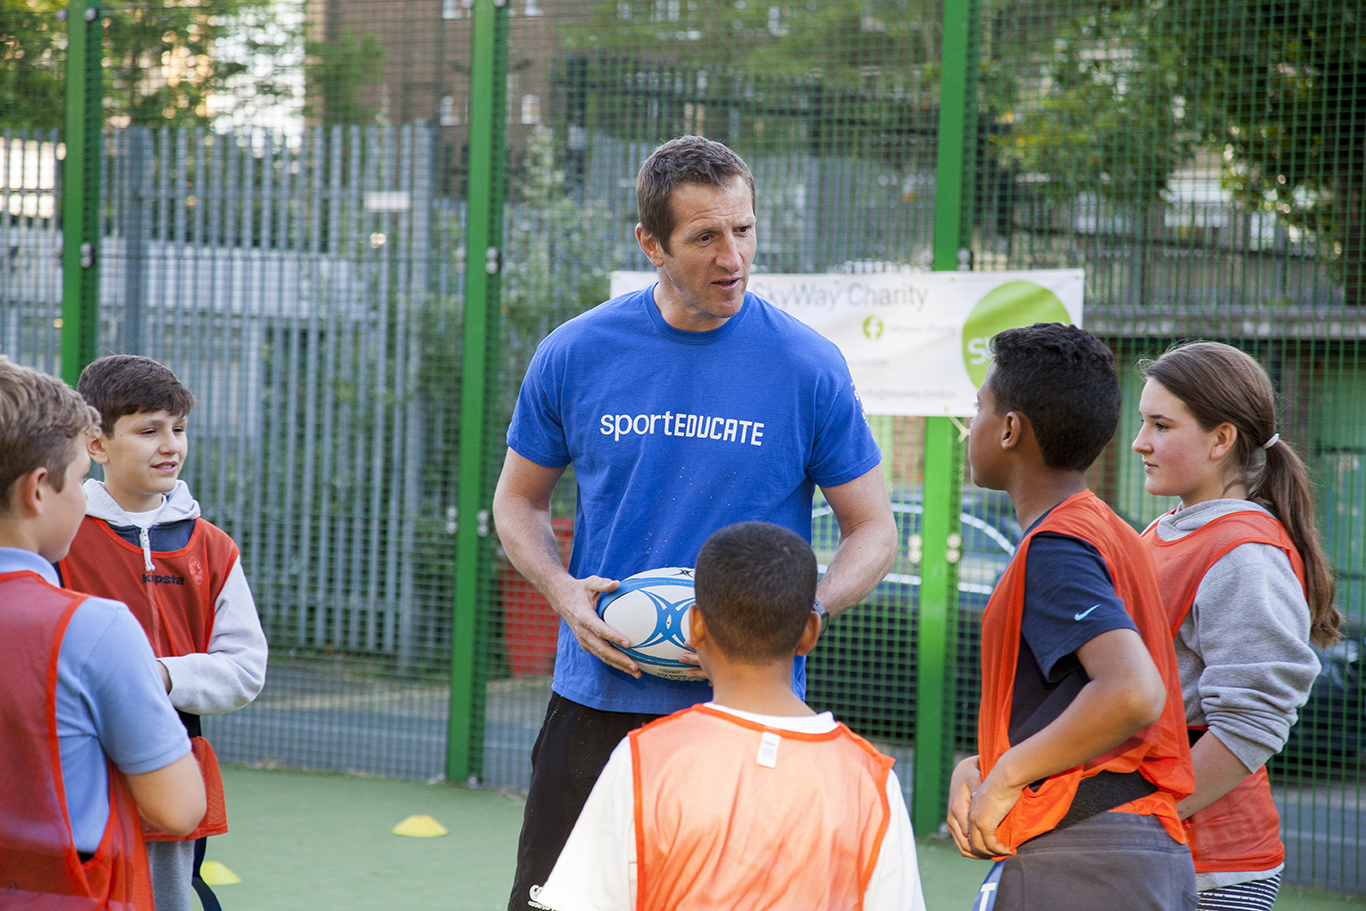 WillGreenwood_Hackney Rugby London